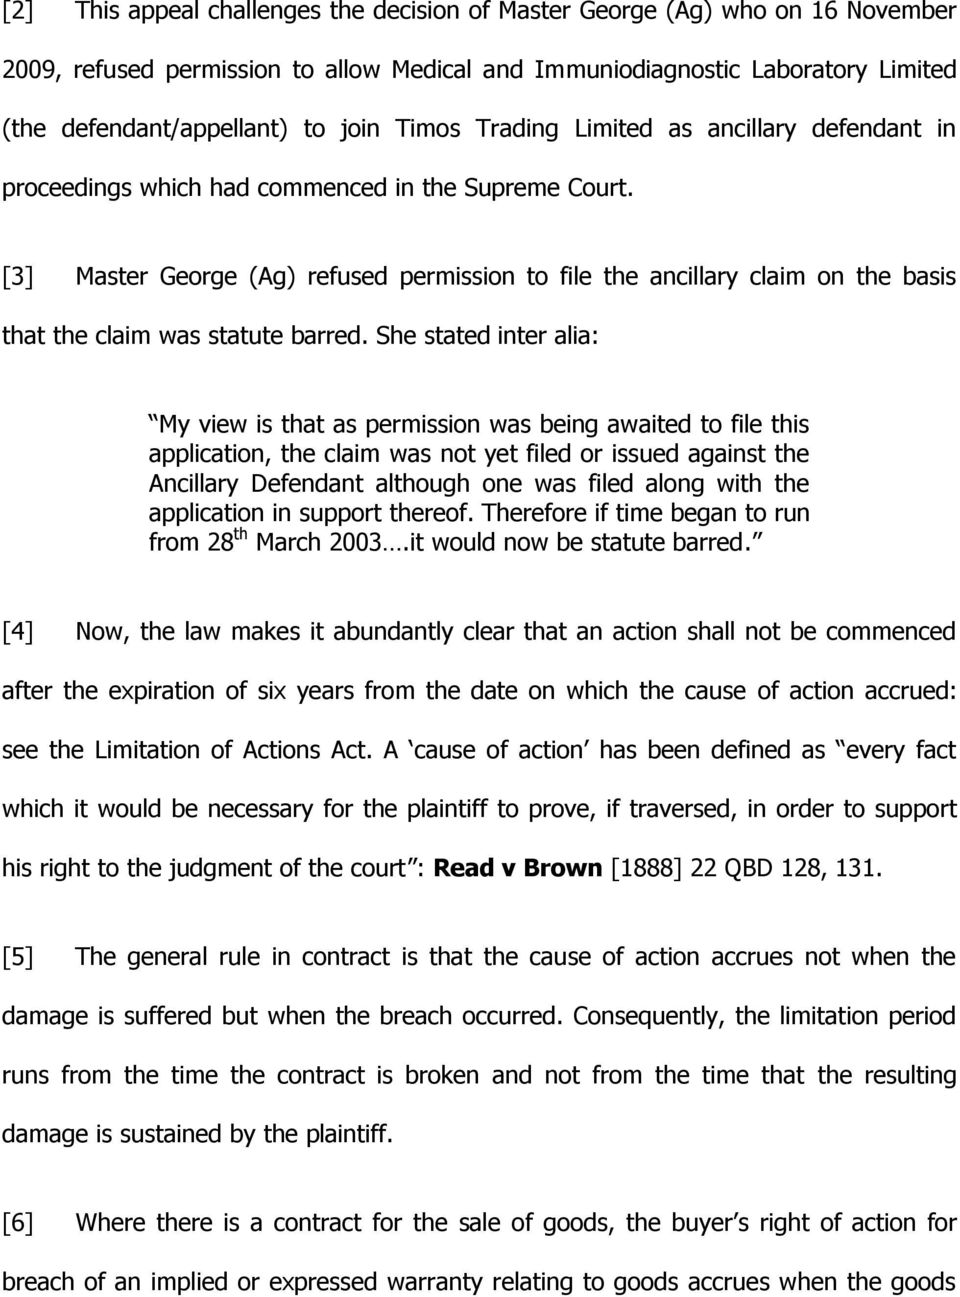 [3] Master George (Ag) refused permission to file the ancillary claim on the basis that the claim was statute barred.